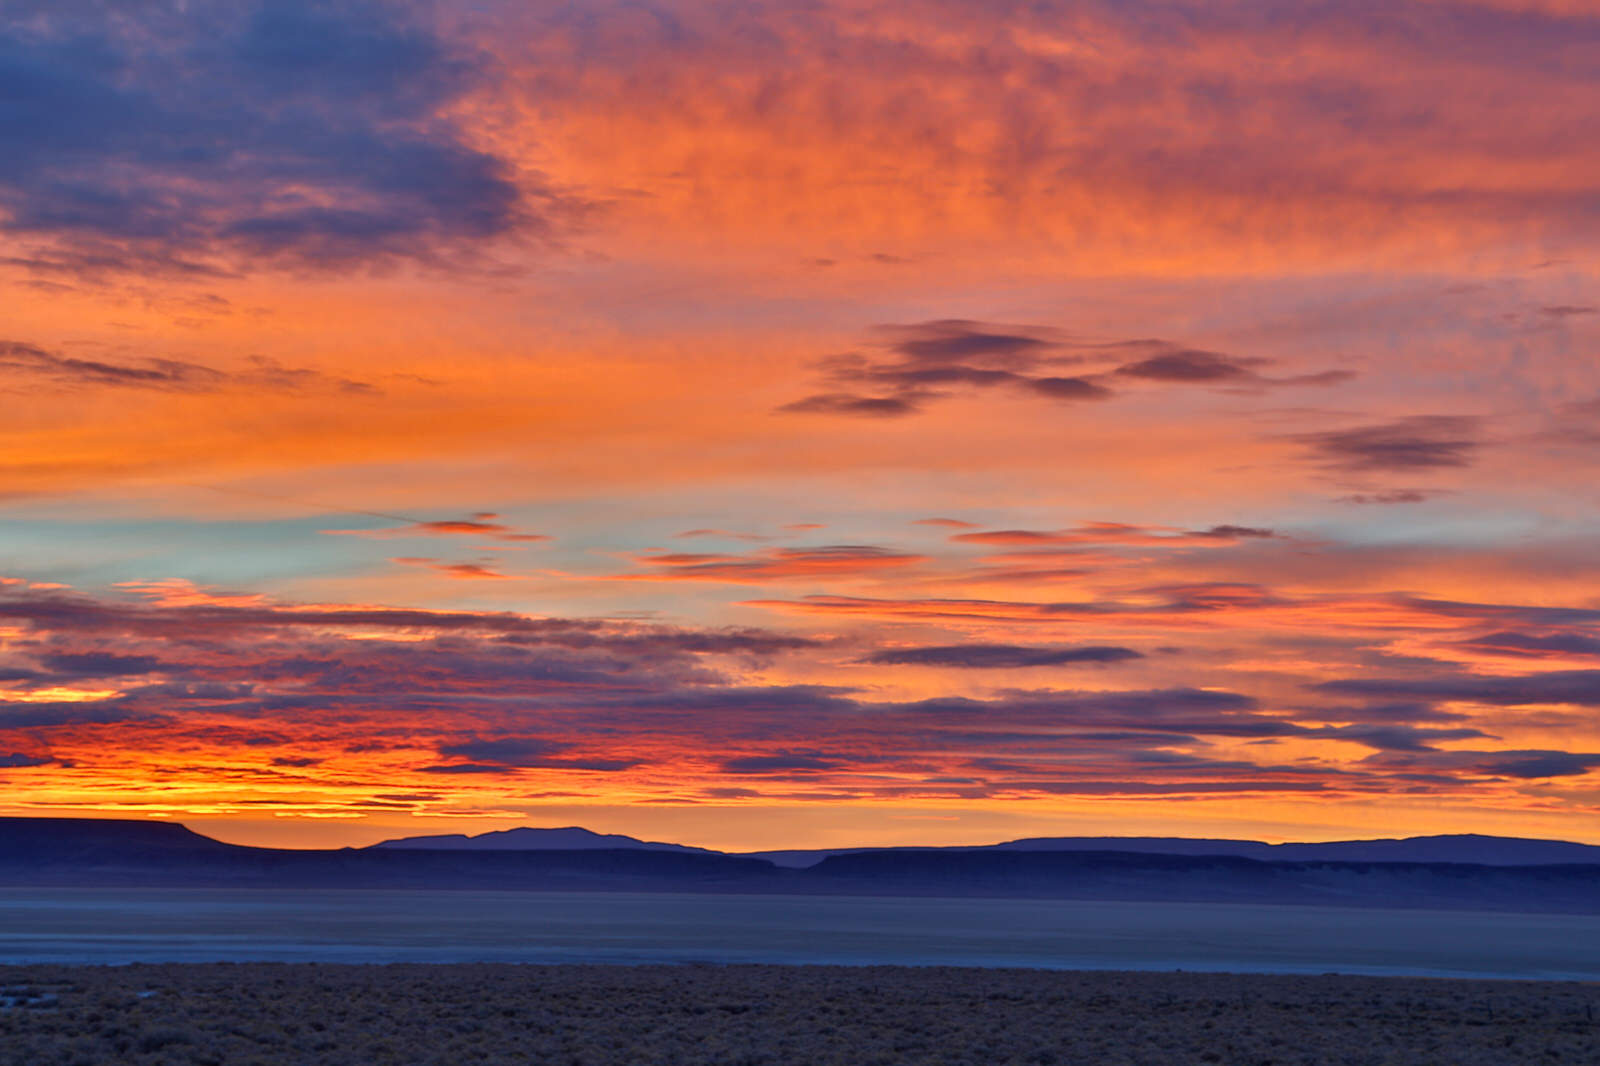 Sunrise over the Alvord Desert